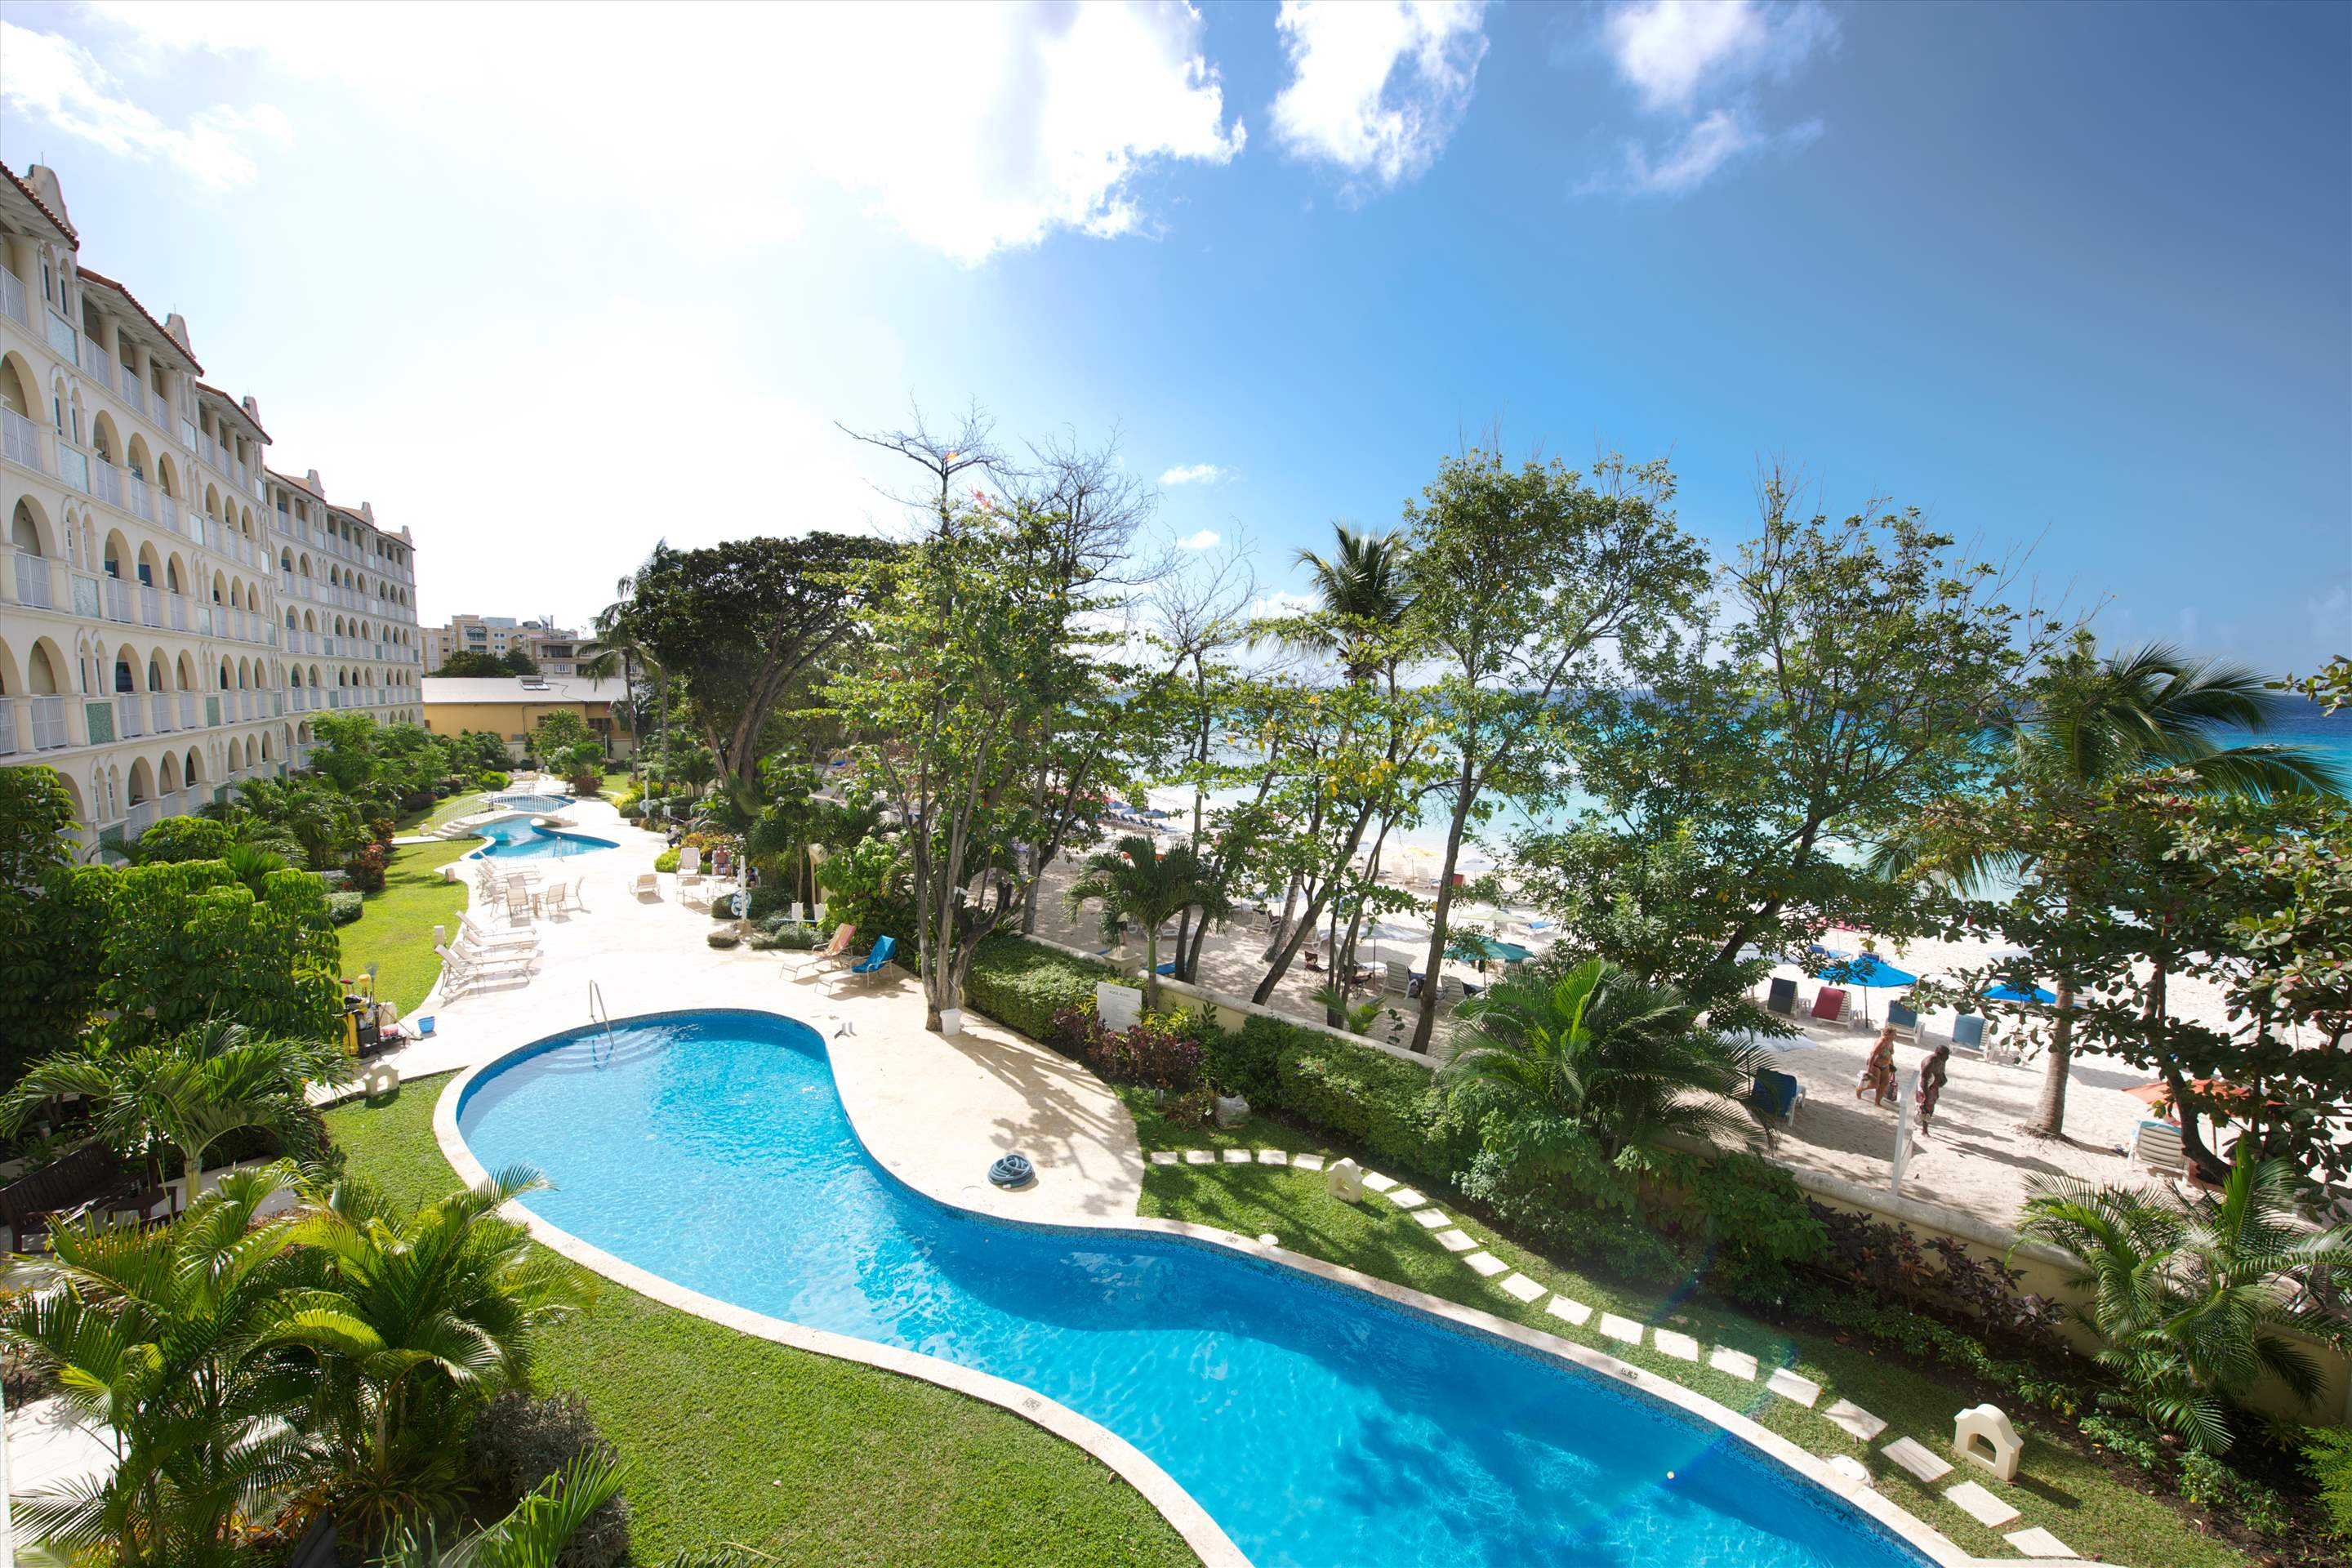 Sapphire Beach 203, 2 bedroom, 3 bedroom apartment in St. Lawrence Gap & South Coast, Barbados Photo #1